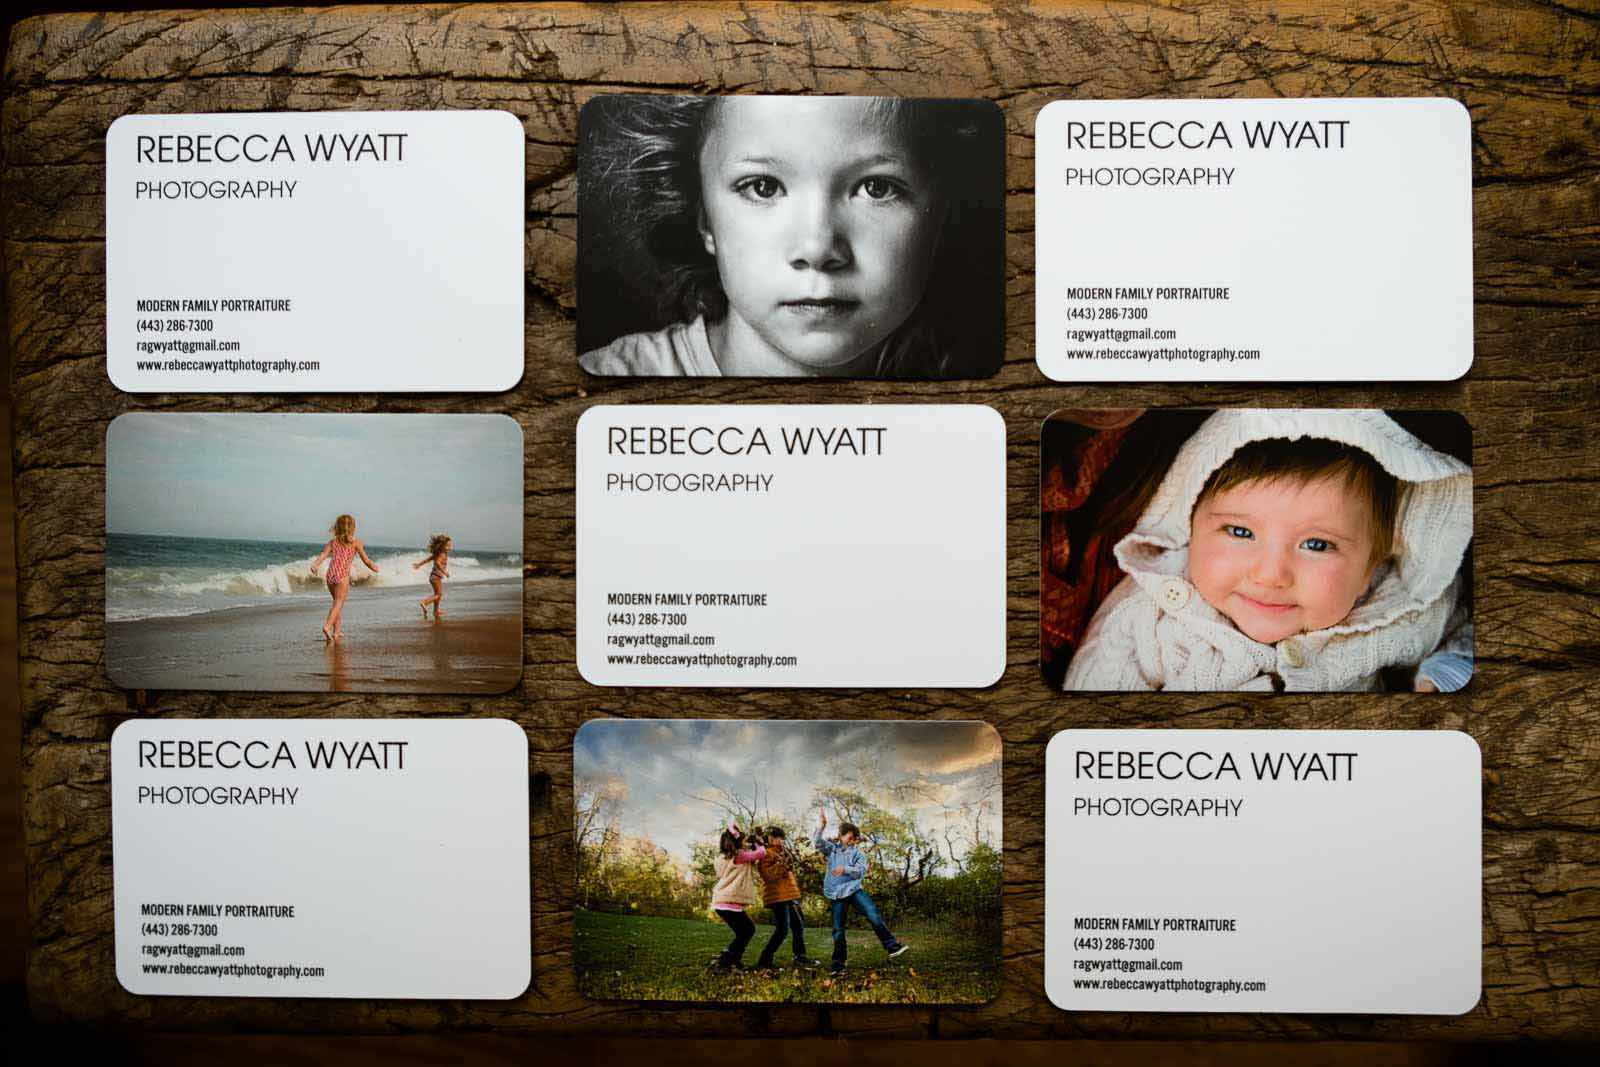 Rebecca Wyatt's business cards